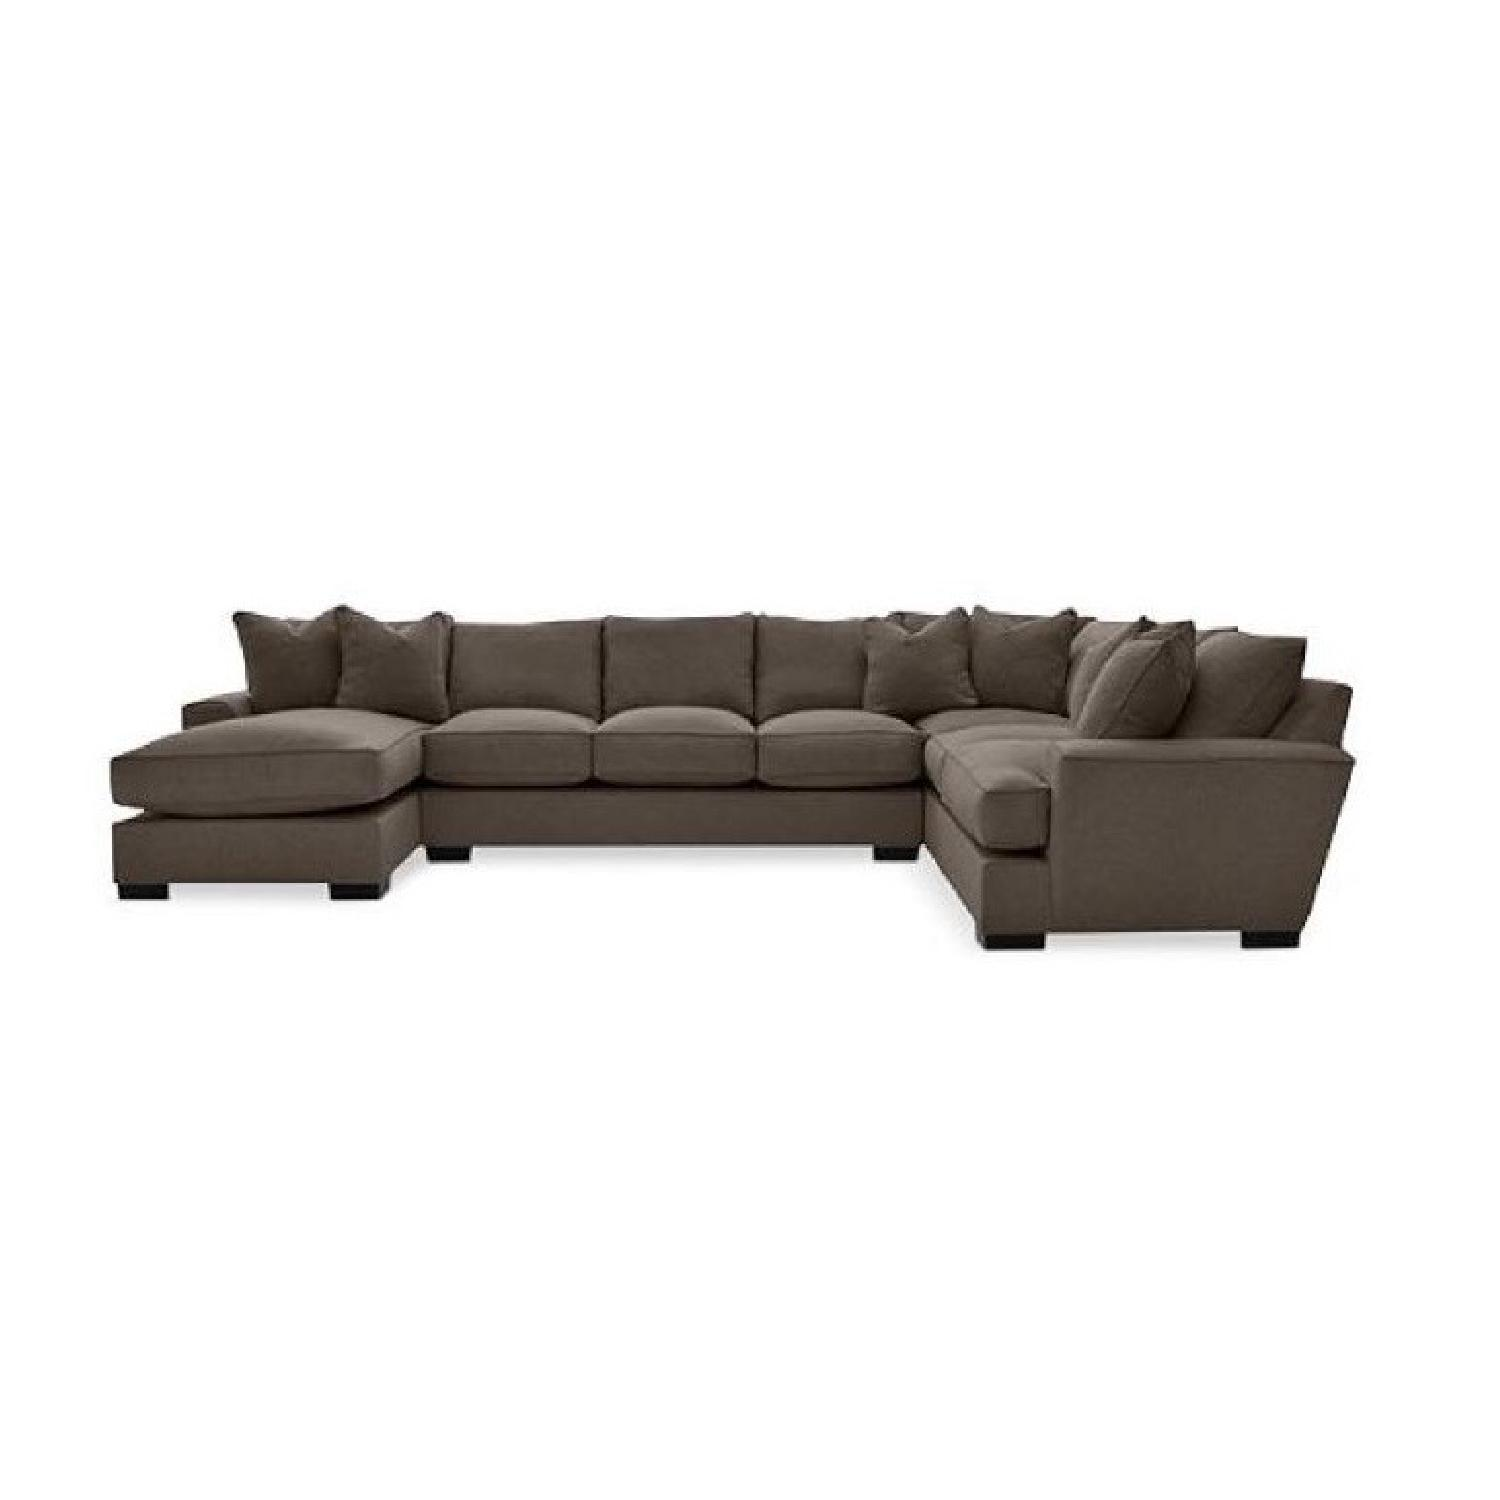 Macy's Ainsley 3-Piece Fabric Chaise Sectional Sofa - image-0